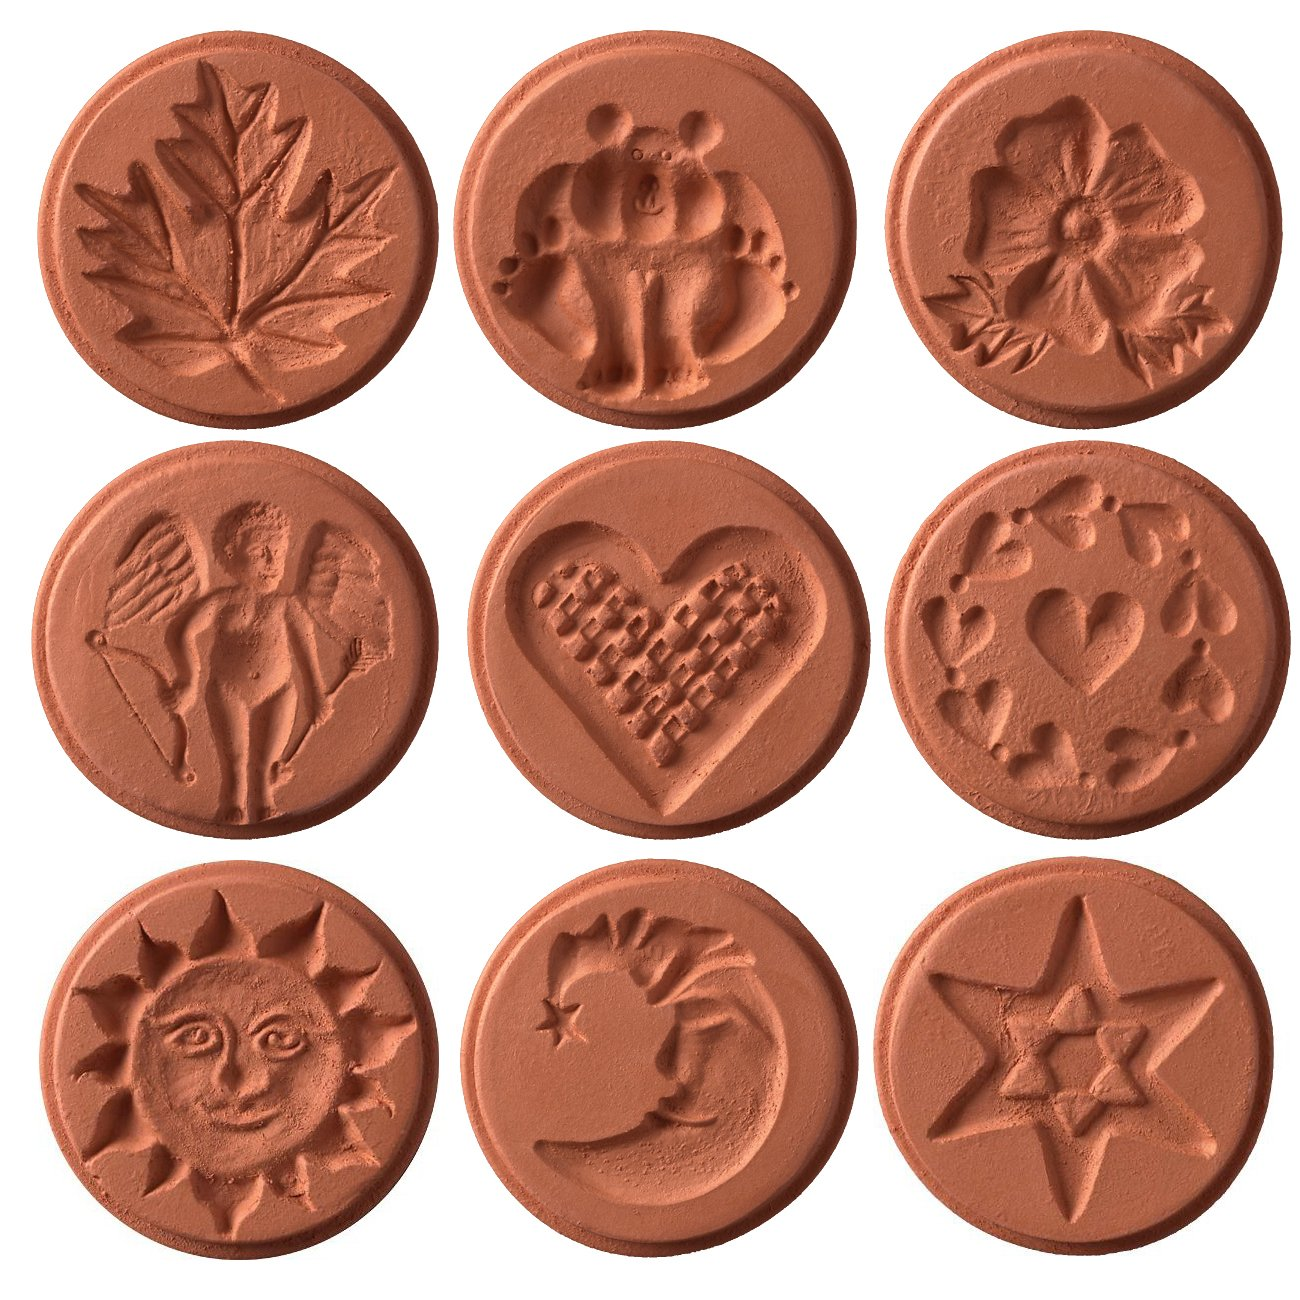 Christmas Cookie Stamps - Full Set of 9 Designs: Amazon.ca: Home ...